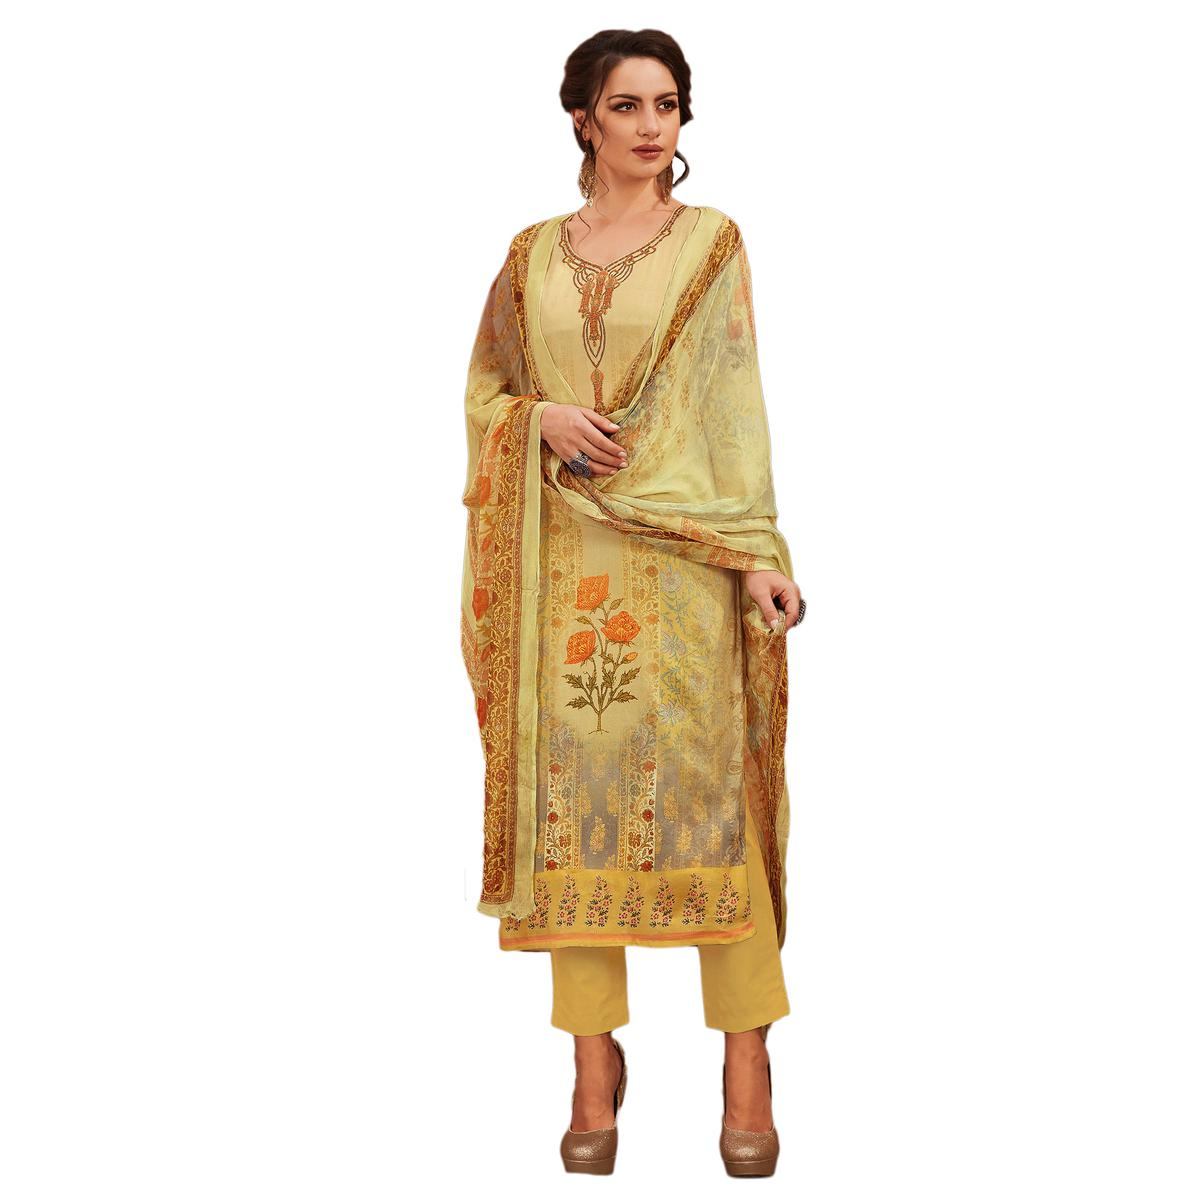 Stylish Light Yellow Colored Partywear Embroidered-Printed Satin Suit